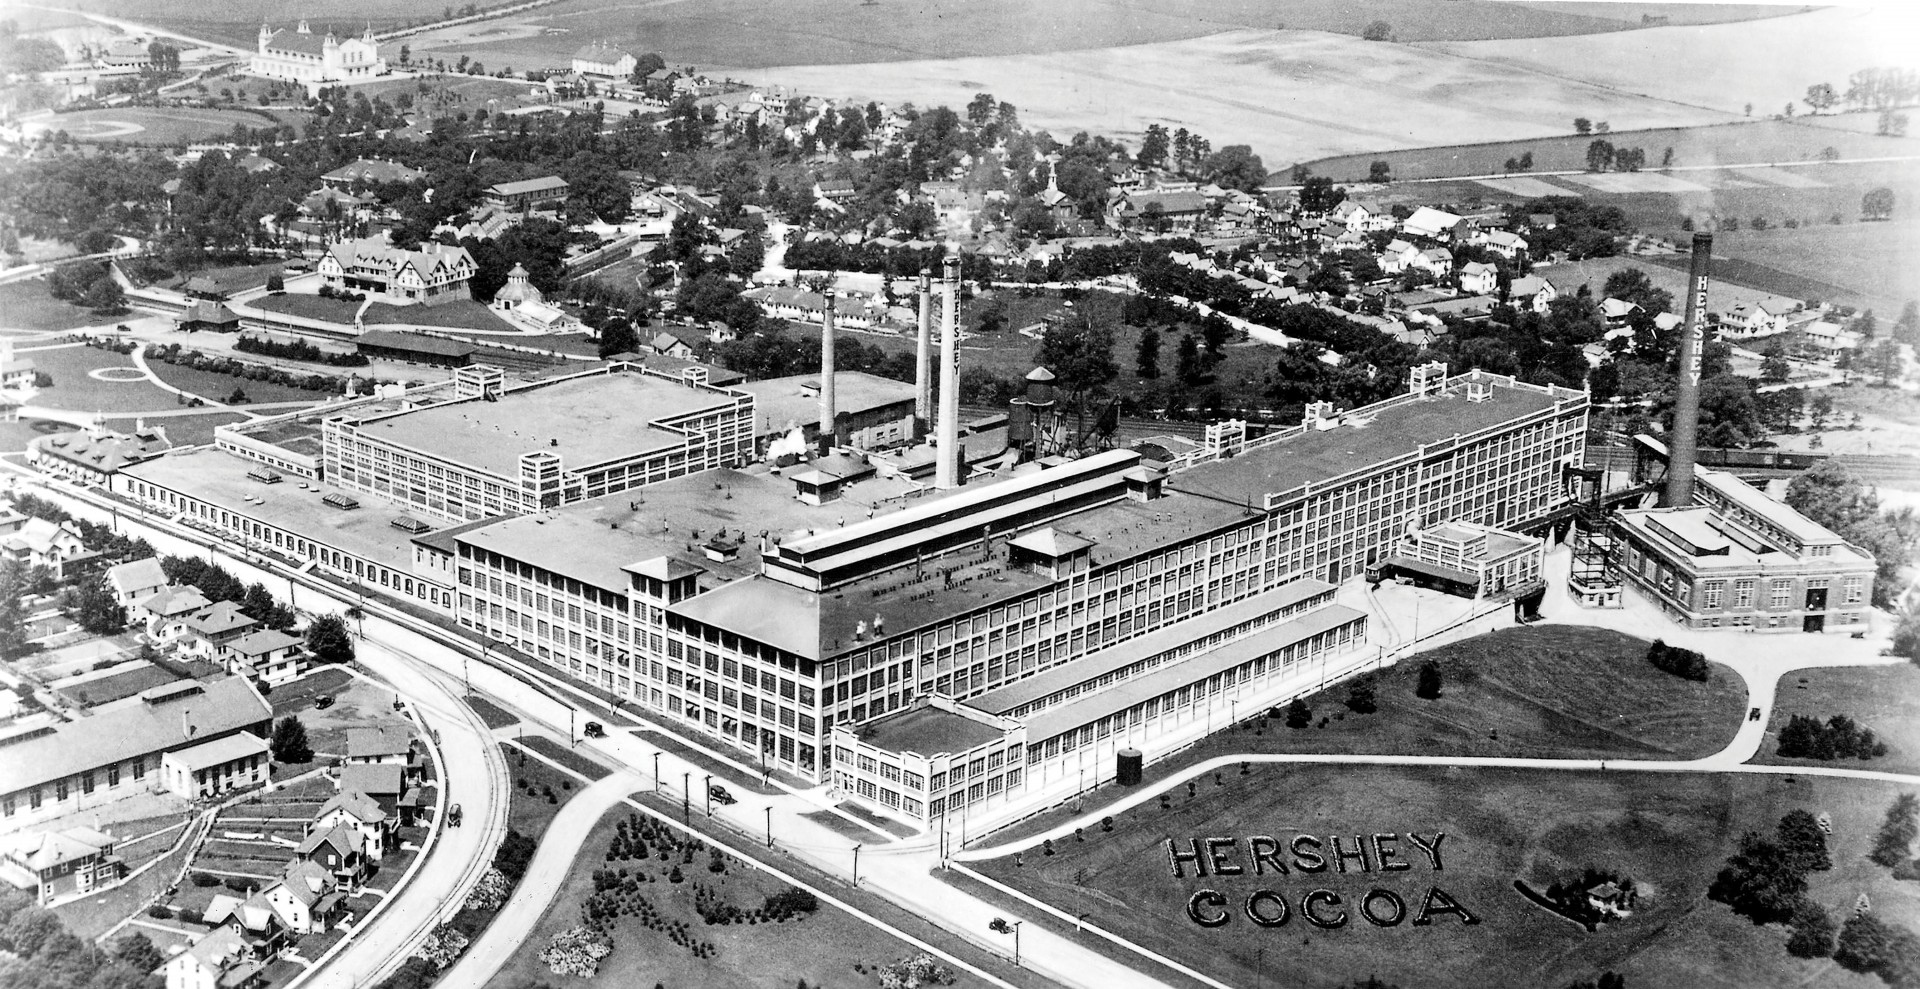 Original Hershey Chocolate Factory